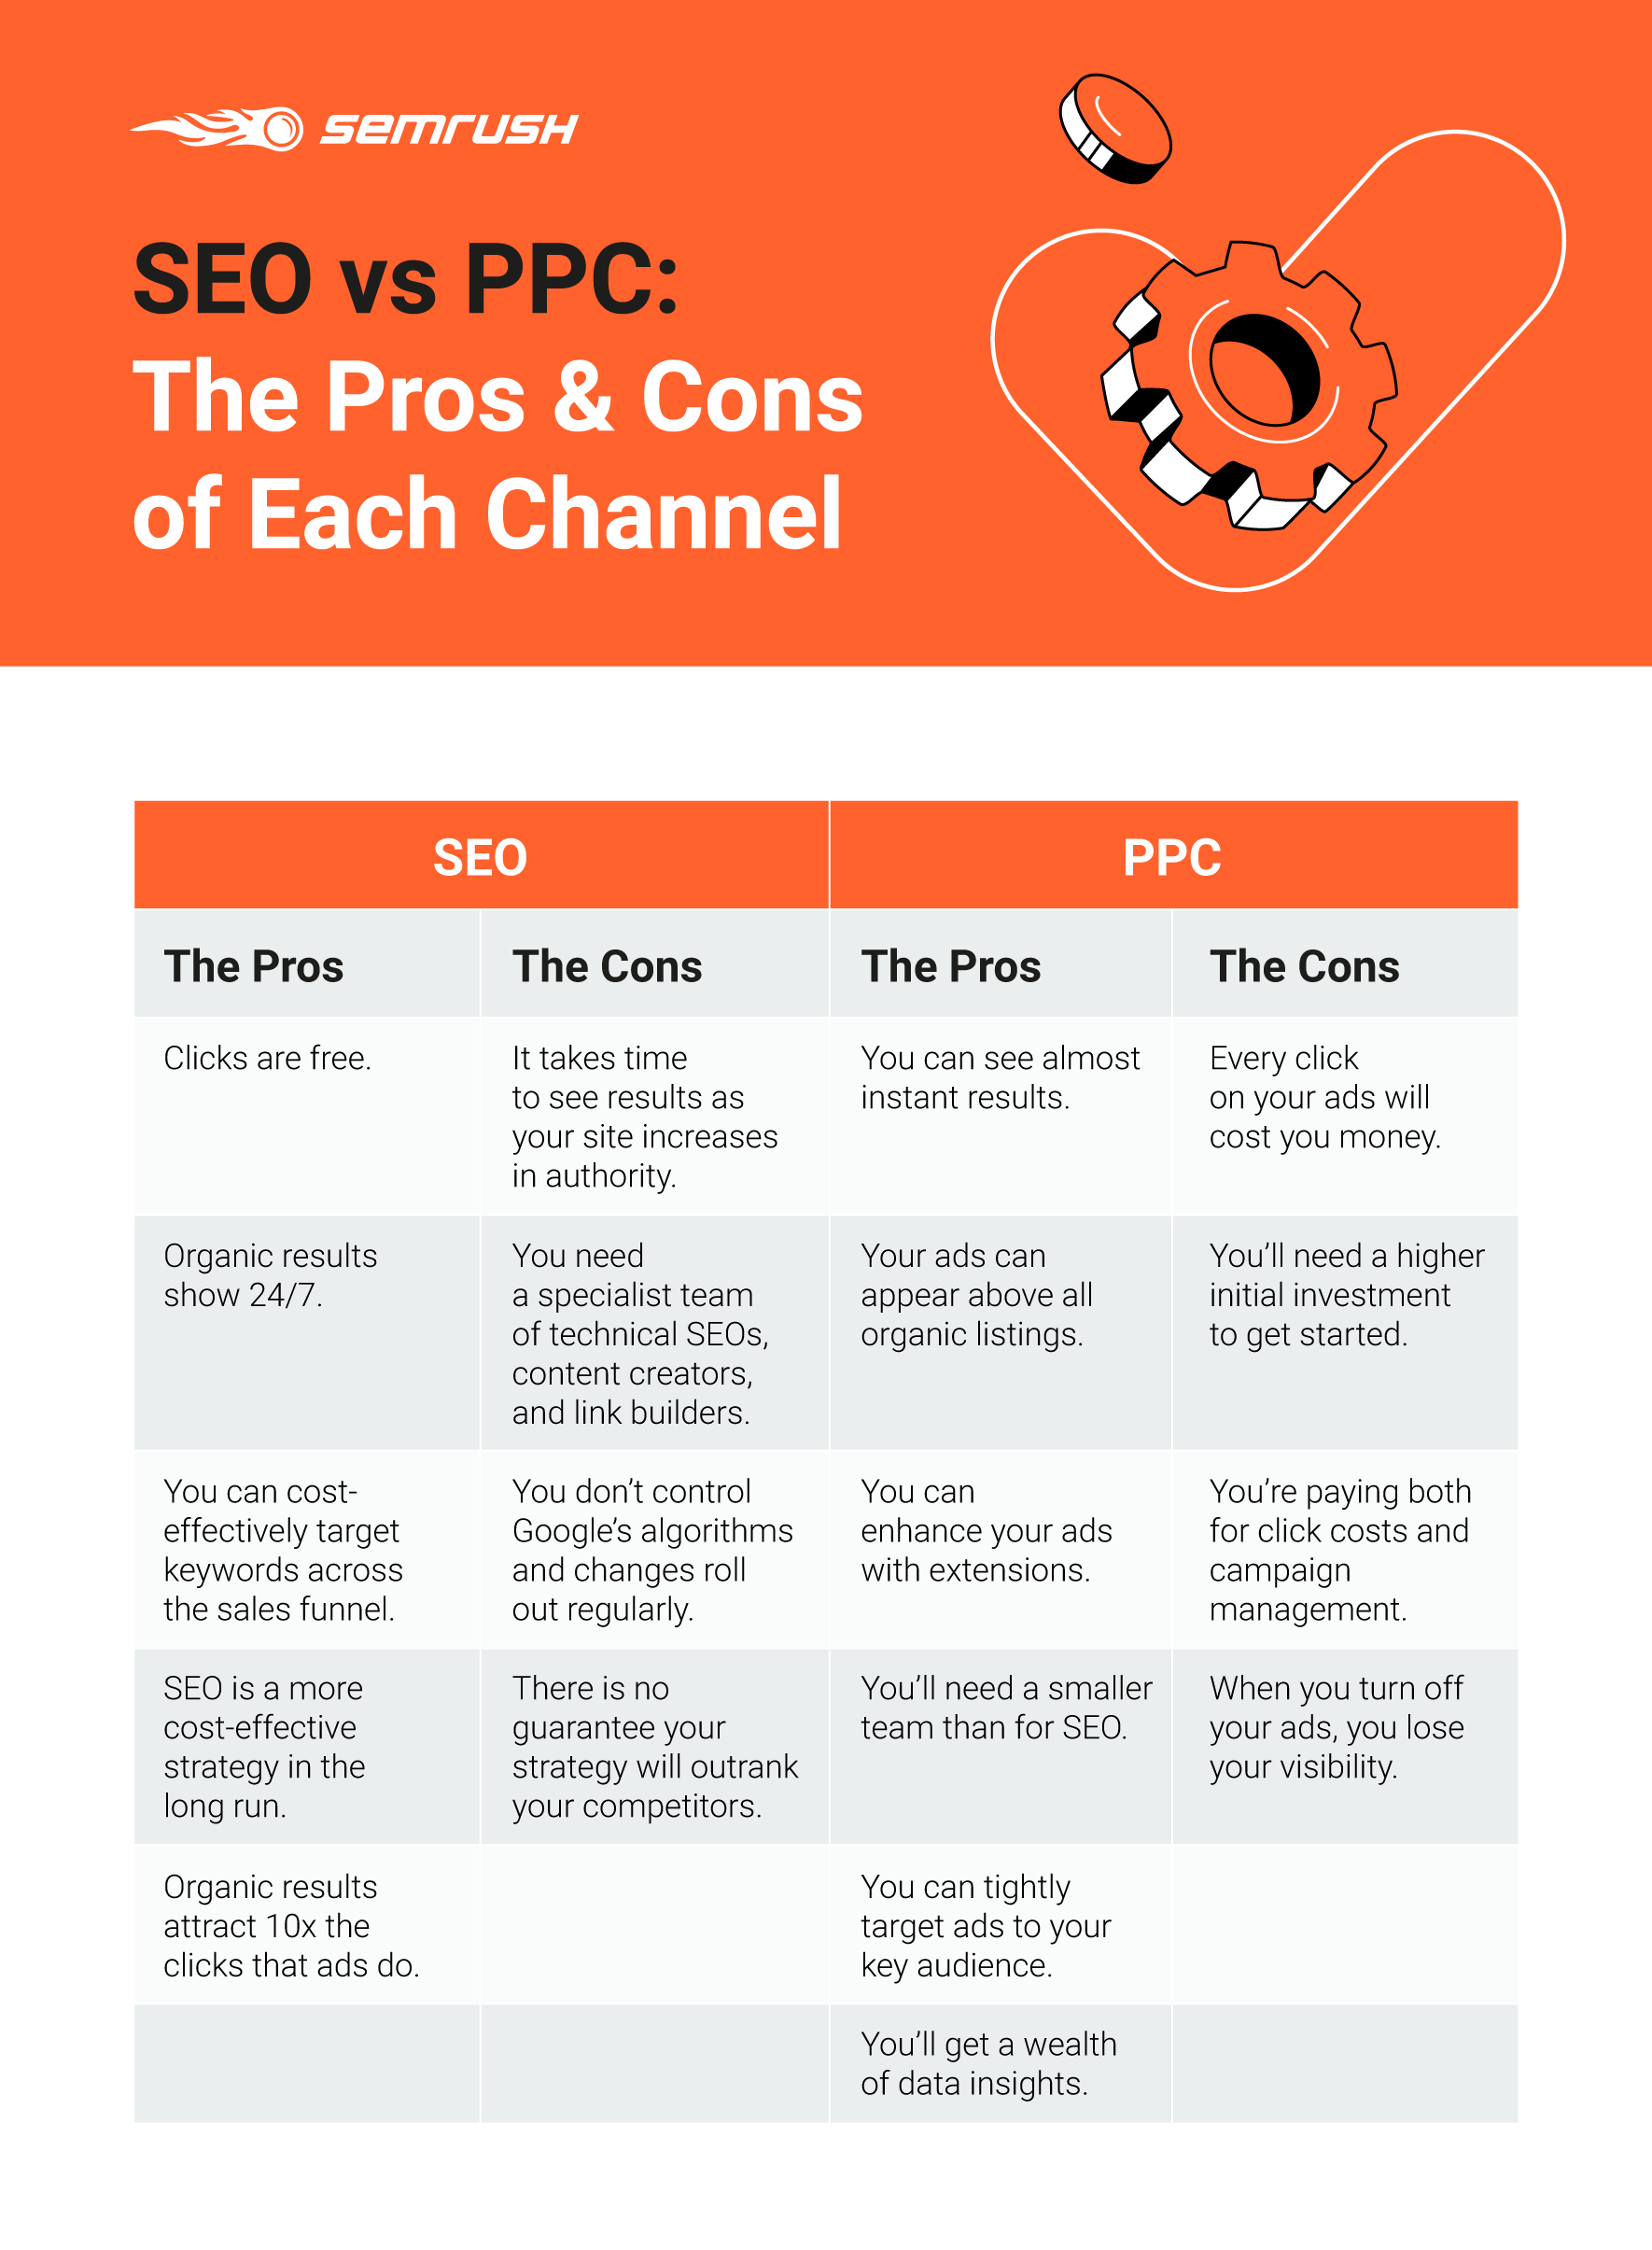 SEO vs PPC Pros and Cons List